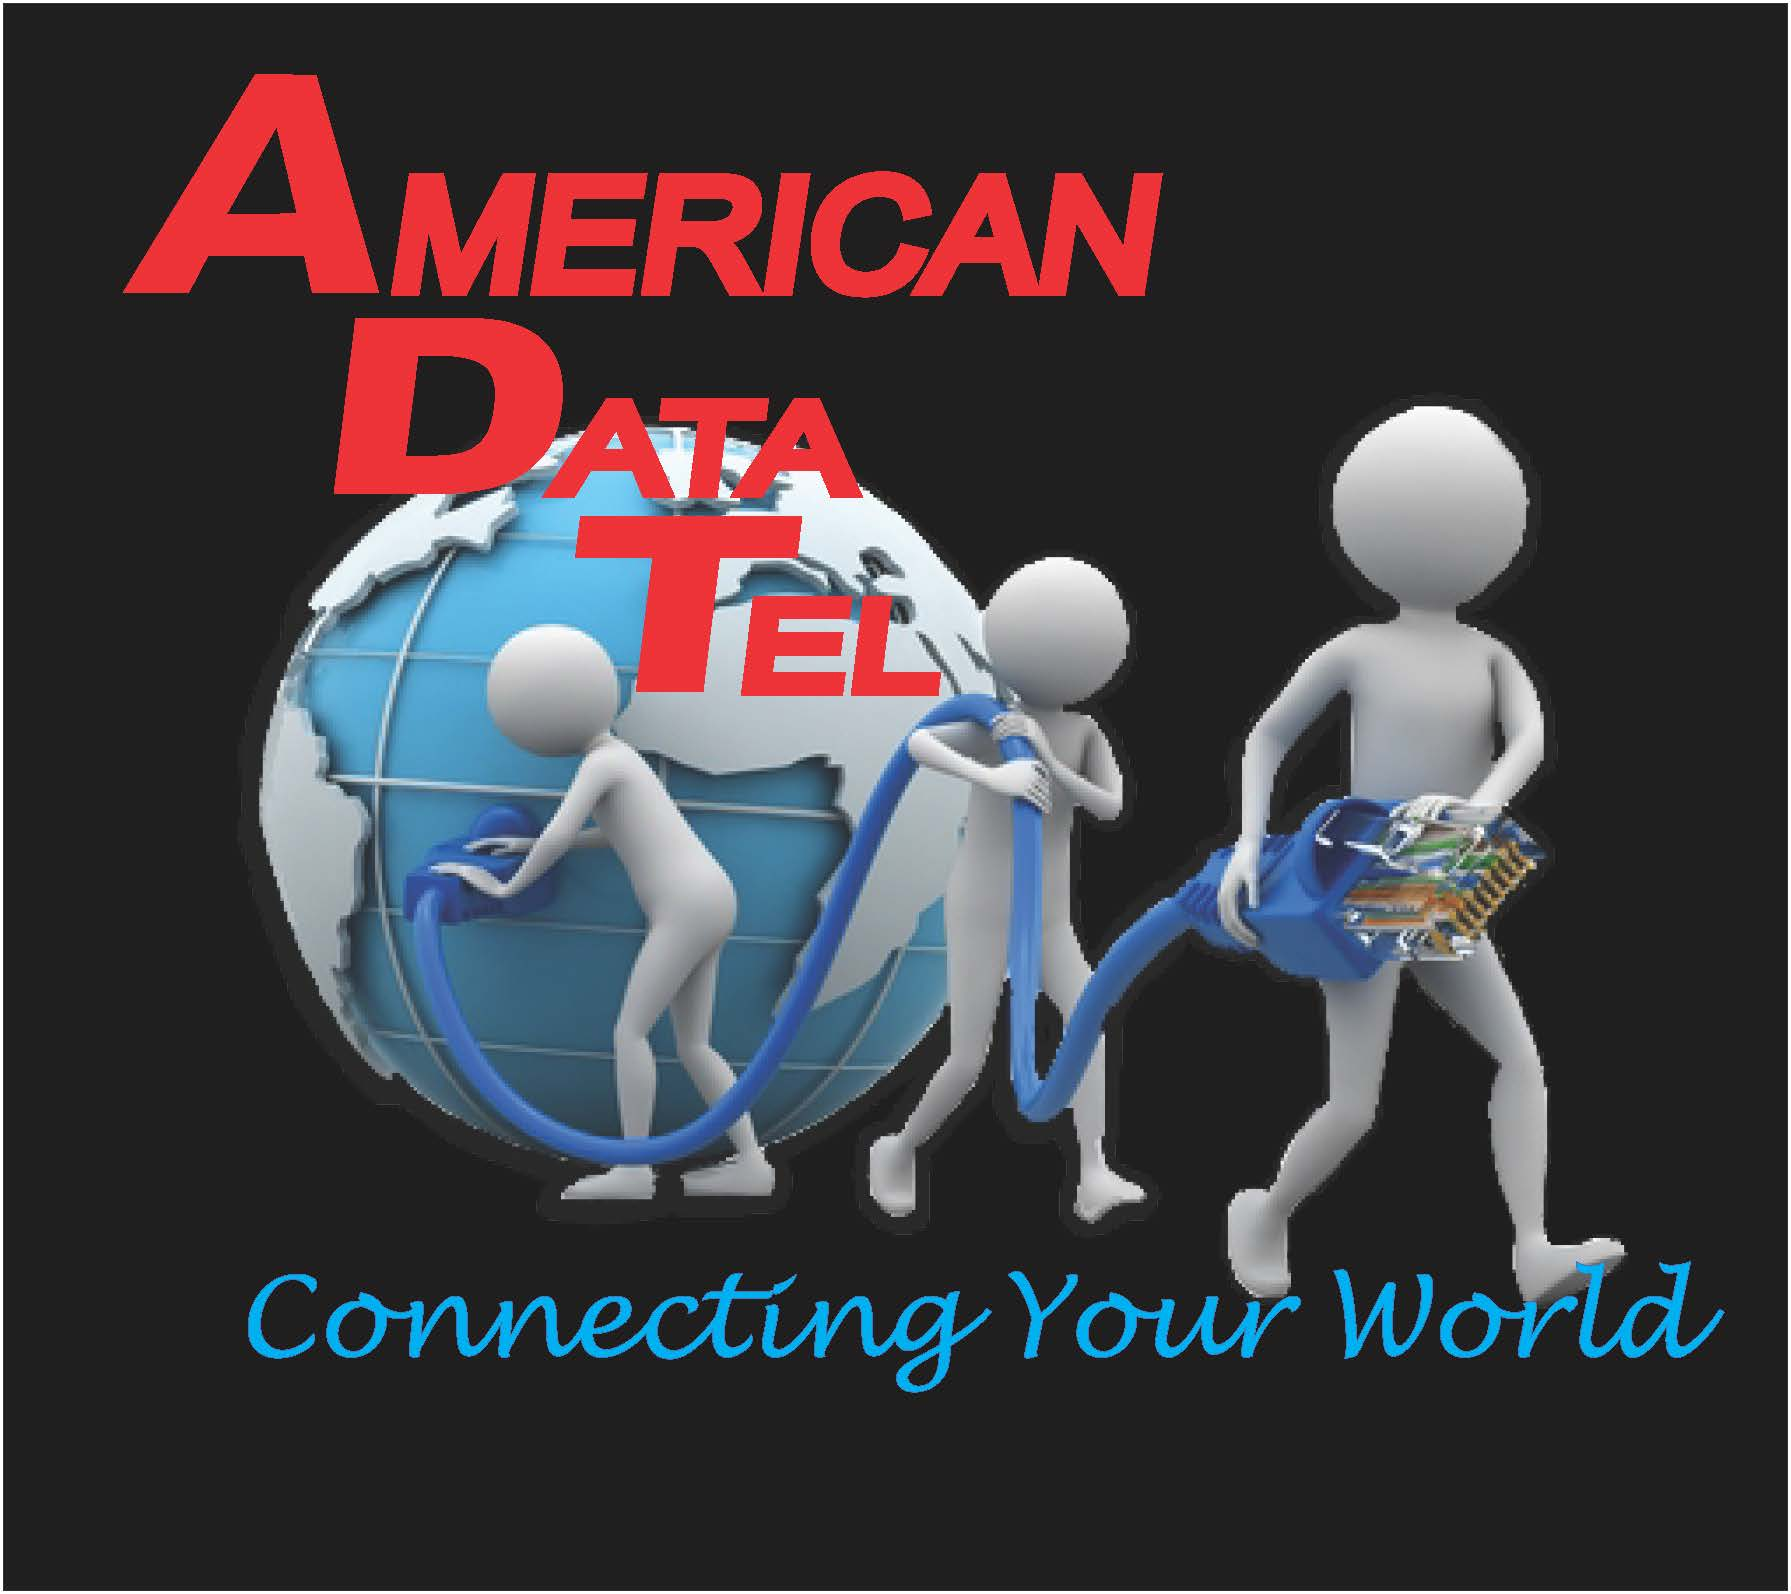 American Datatel Computer Networking Long Island